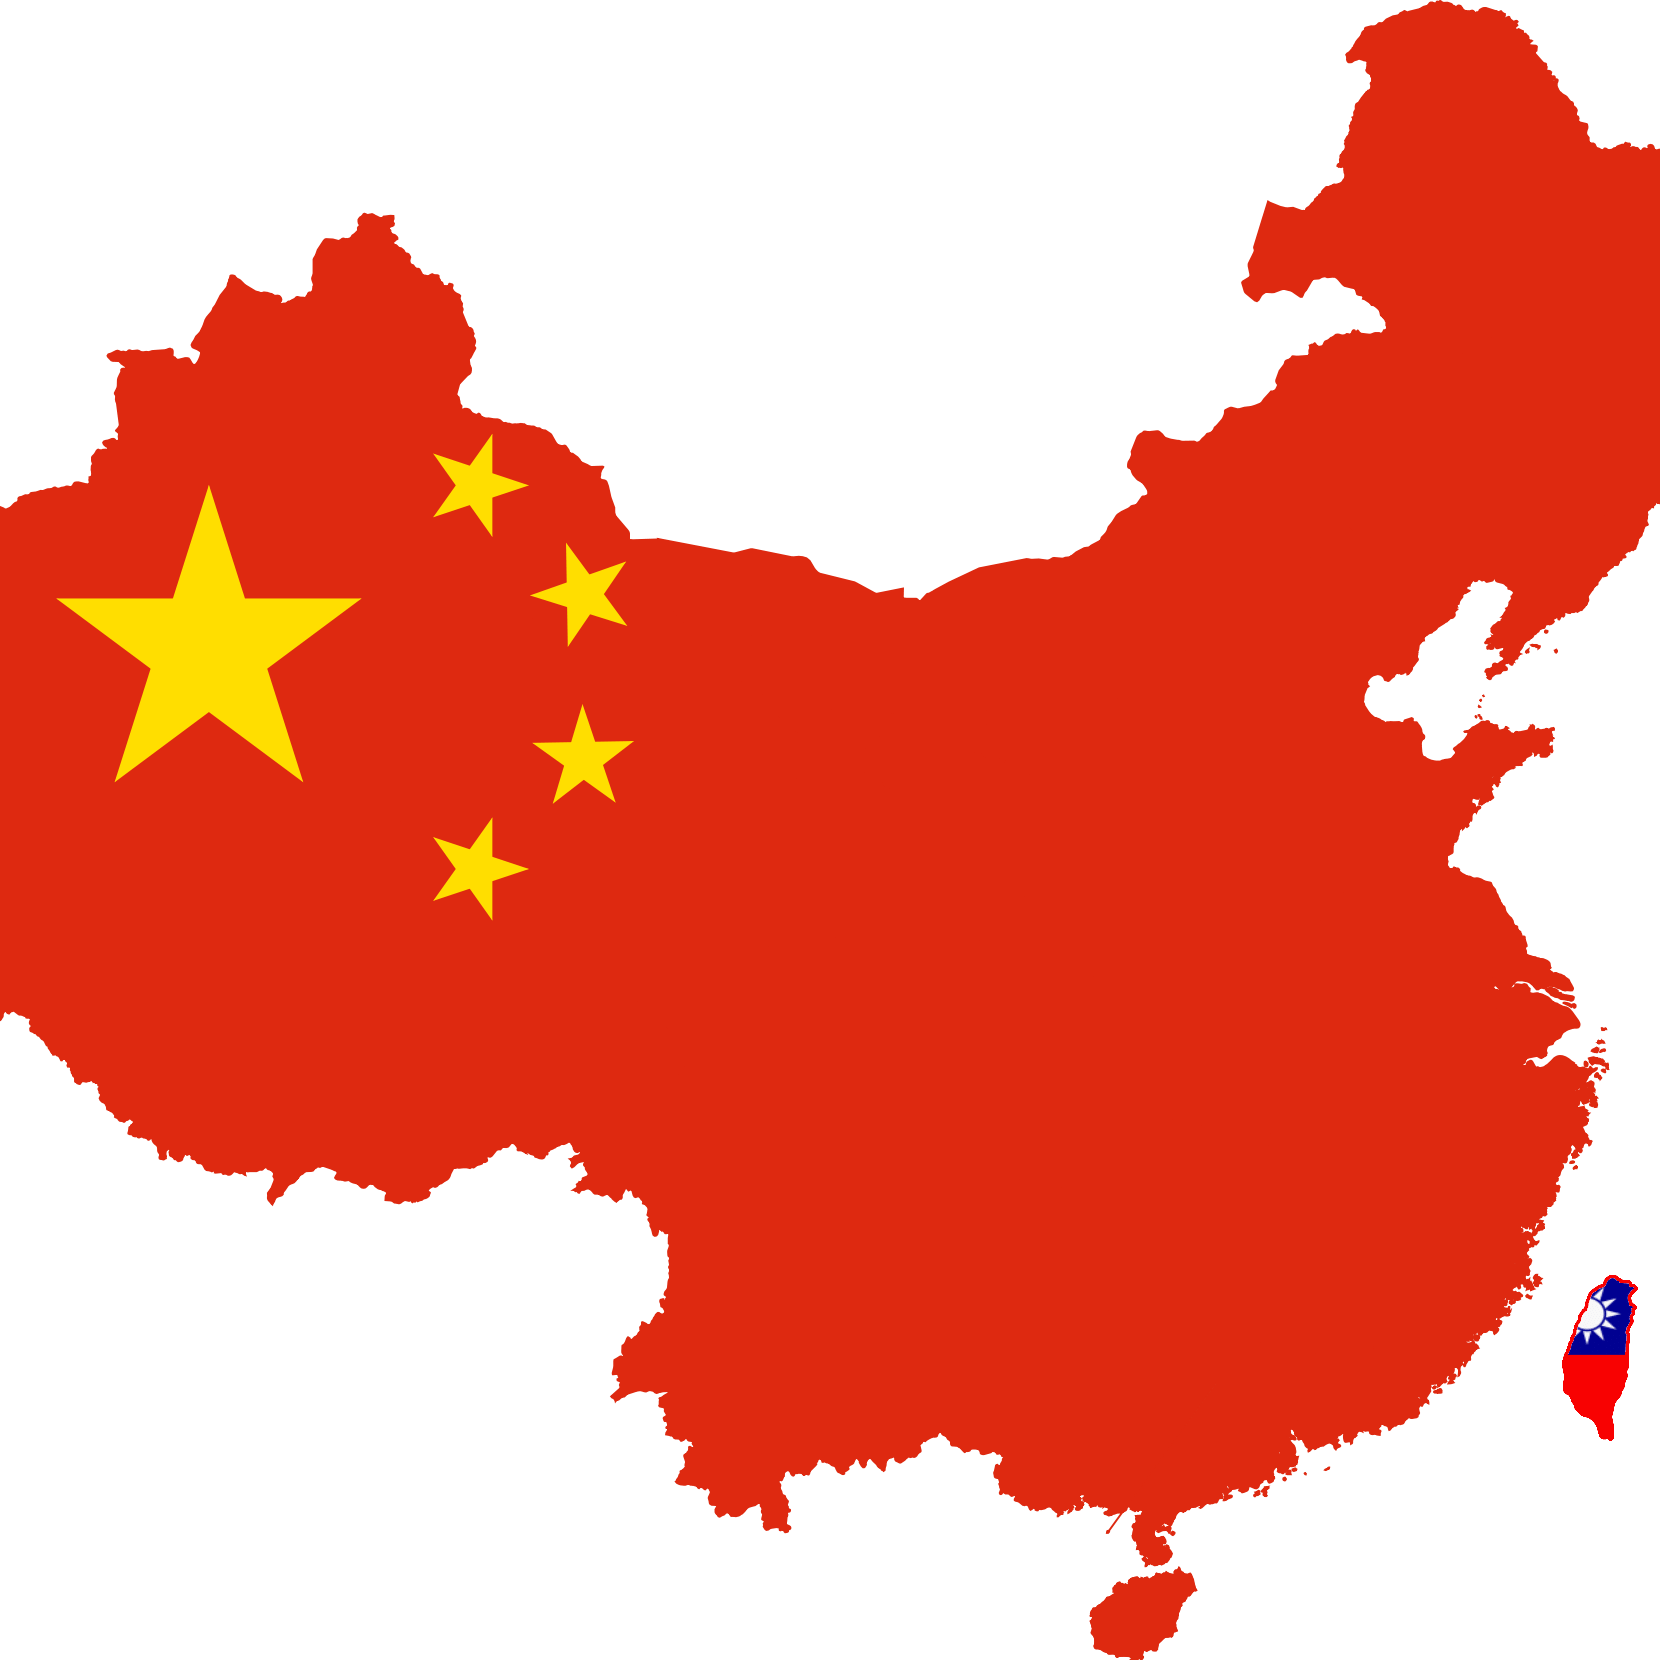 Chinese Market To Reach $1.6B By 2016